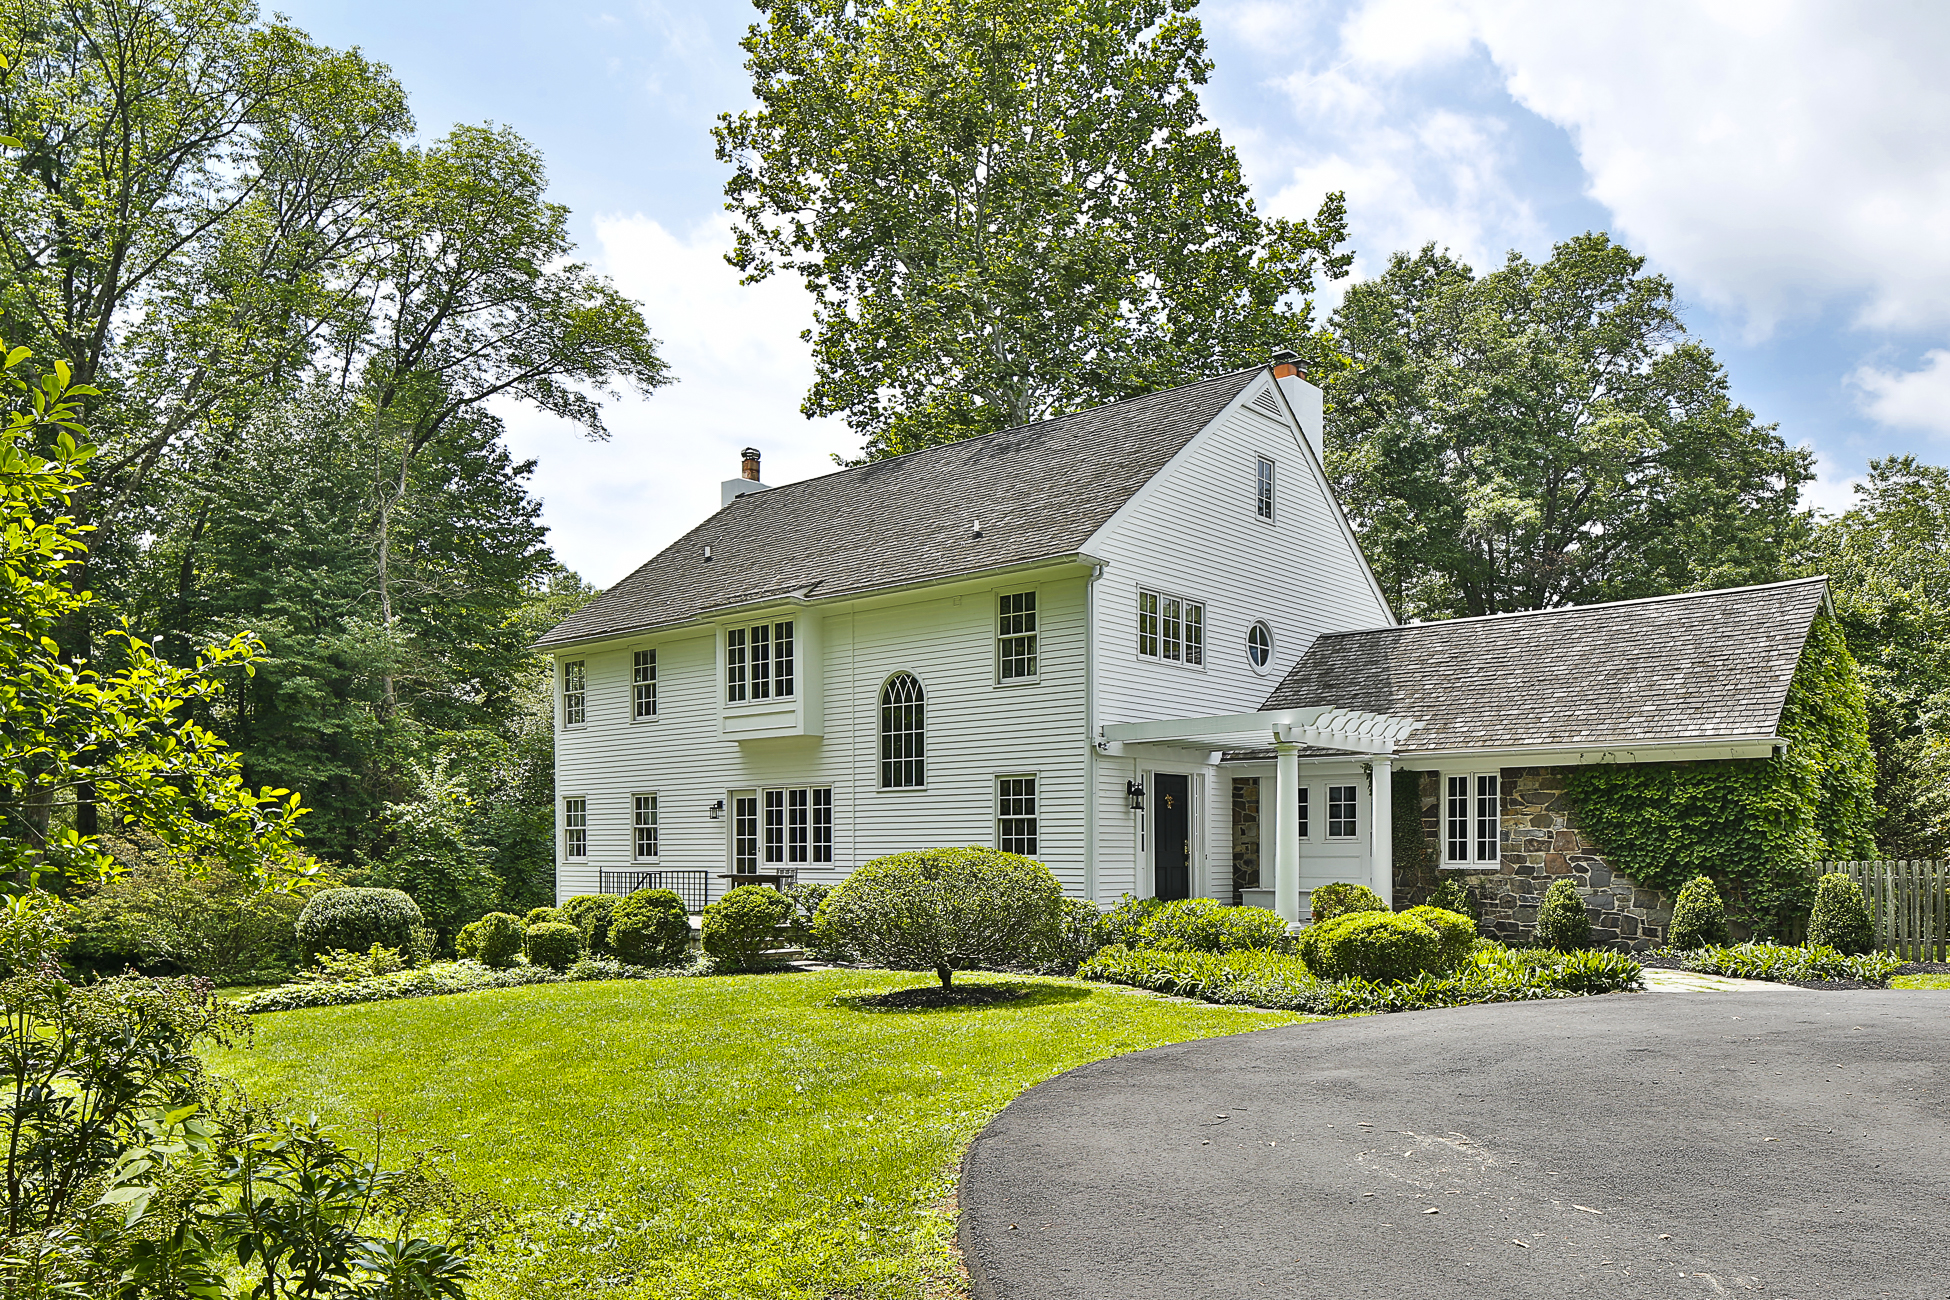 一戸建て のために 売買 アット Stunning Home Amid a Perfect Natural Backdrop - Hopewell Township 305 Carter Road Princeton, ニュージャージー 08540 アメリカ合衆国